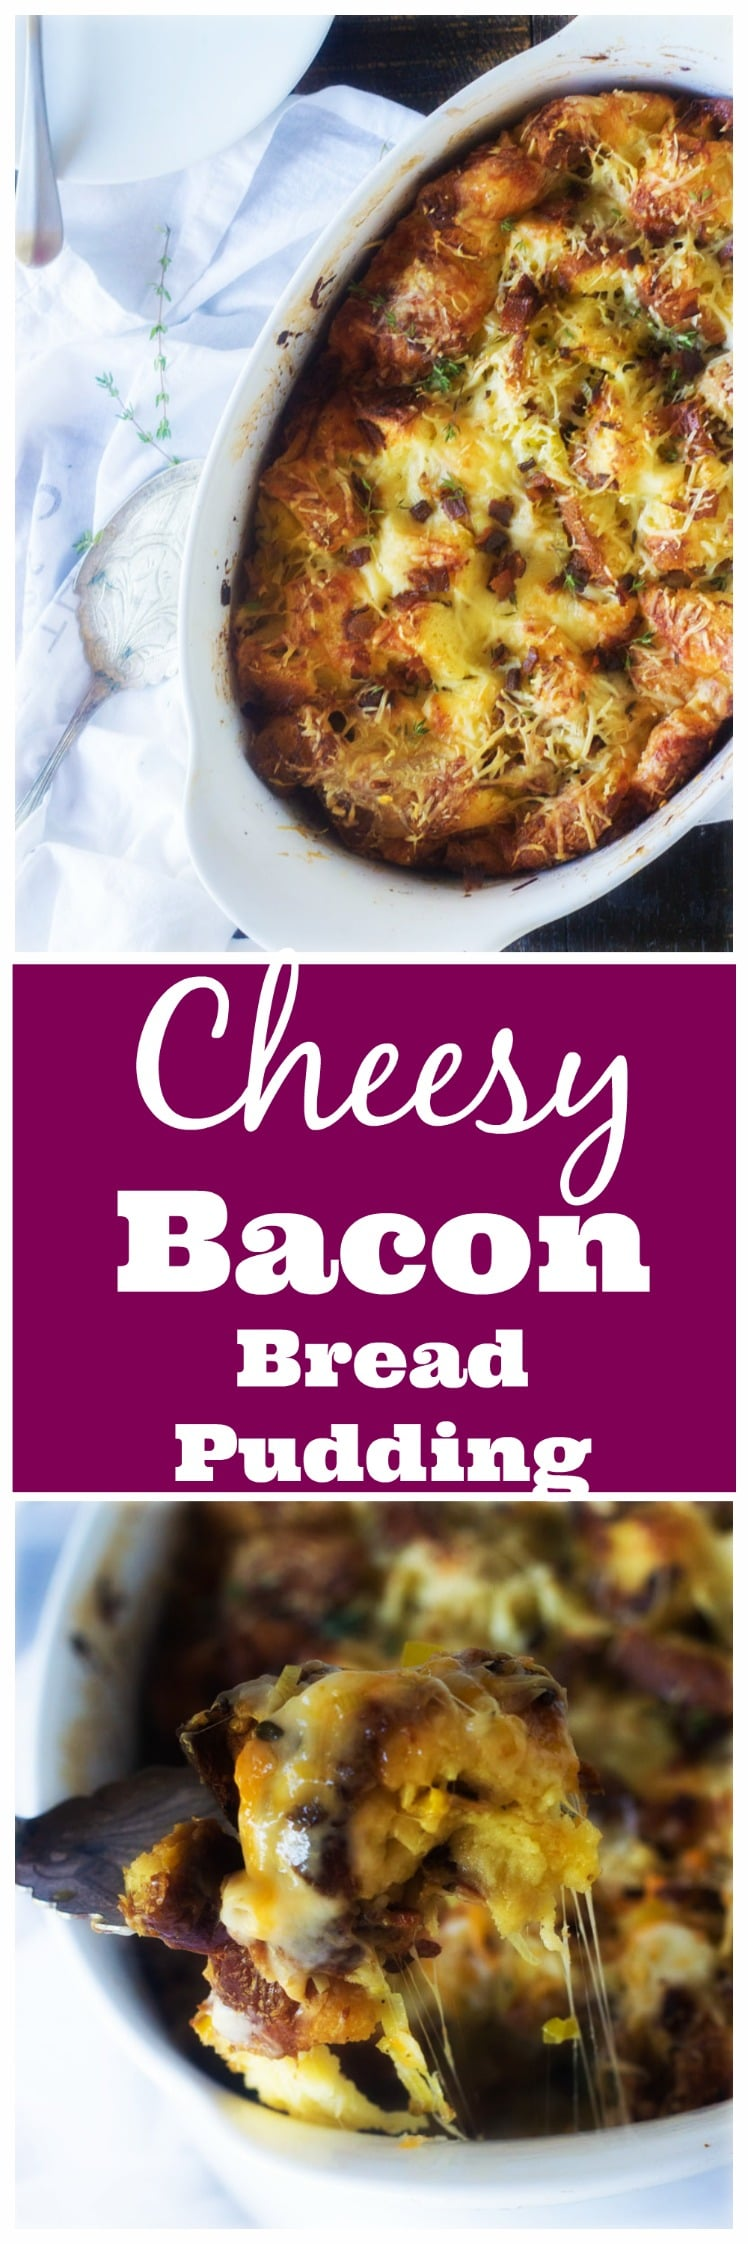 When dressing or stuffing just does not make the cut, make this glorious Cheesy Bacon Bread Pudding instead! Filled with sweet leeks, smoky bacon and salty Parmesan cheese this incredibly fast and delicious recipe will be the new go to for all your Thanksgiving and holiday must haves!